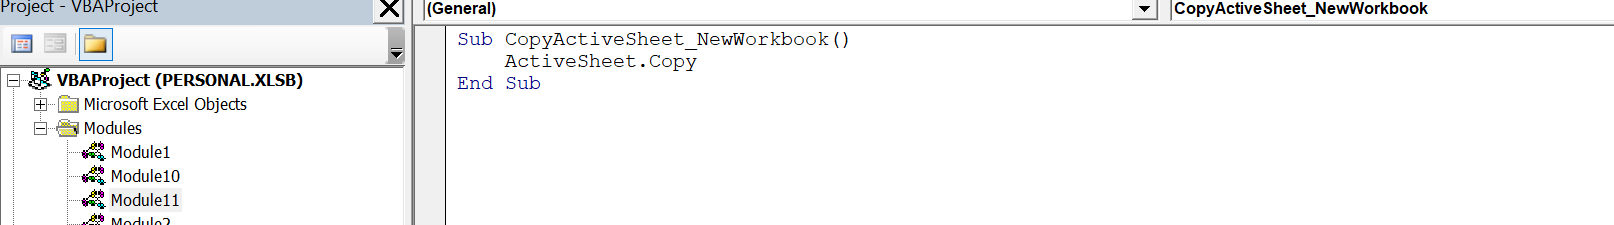 MACRO-MONDAYS-COPY-ACTIVESHEET-TO-NEW-WORKBOOK-1 Vba Copy Worksheet To Another Workbook Without S on